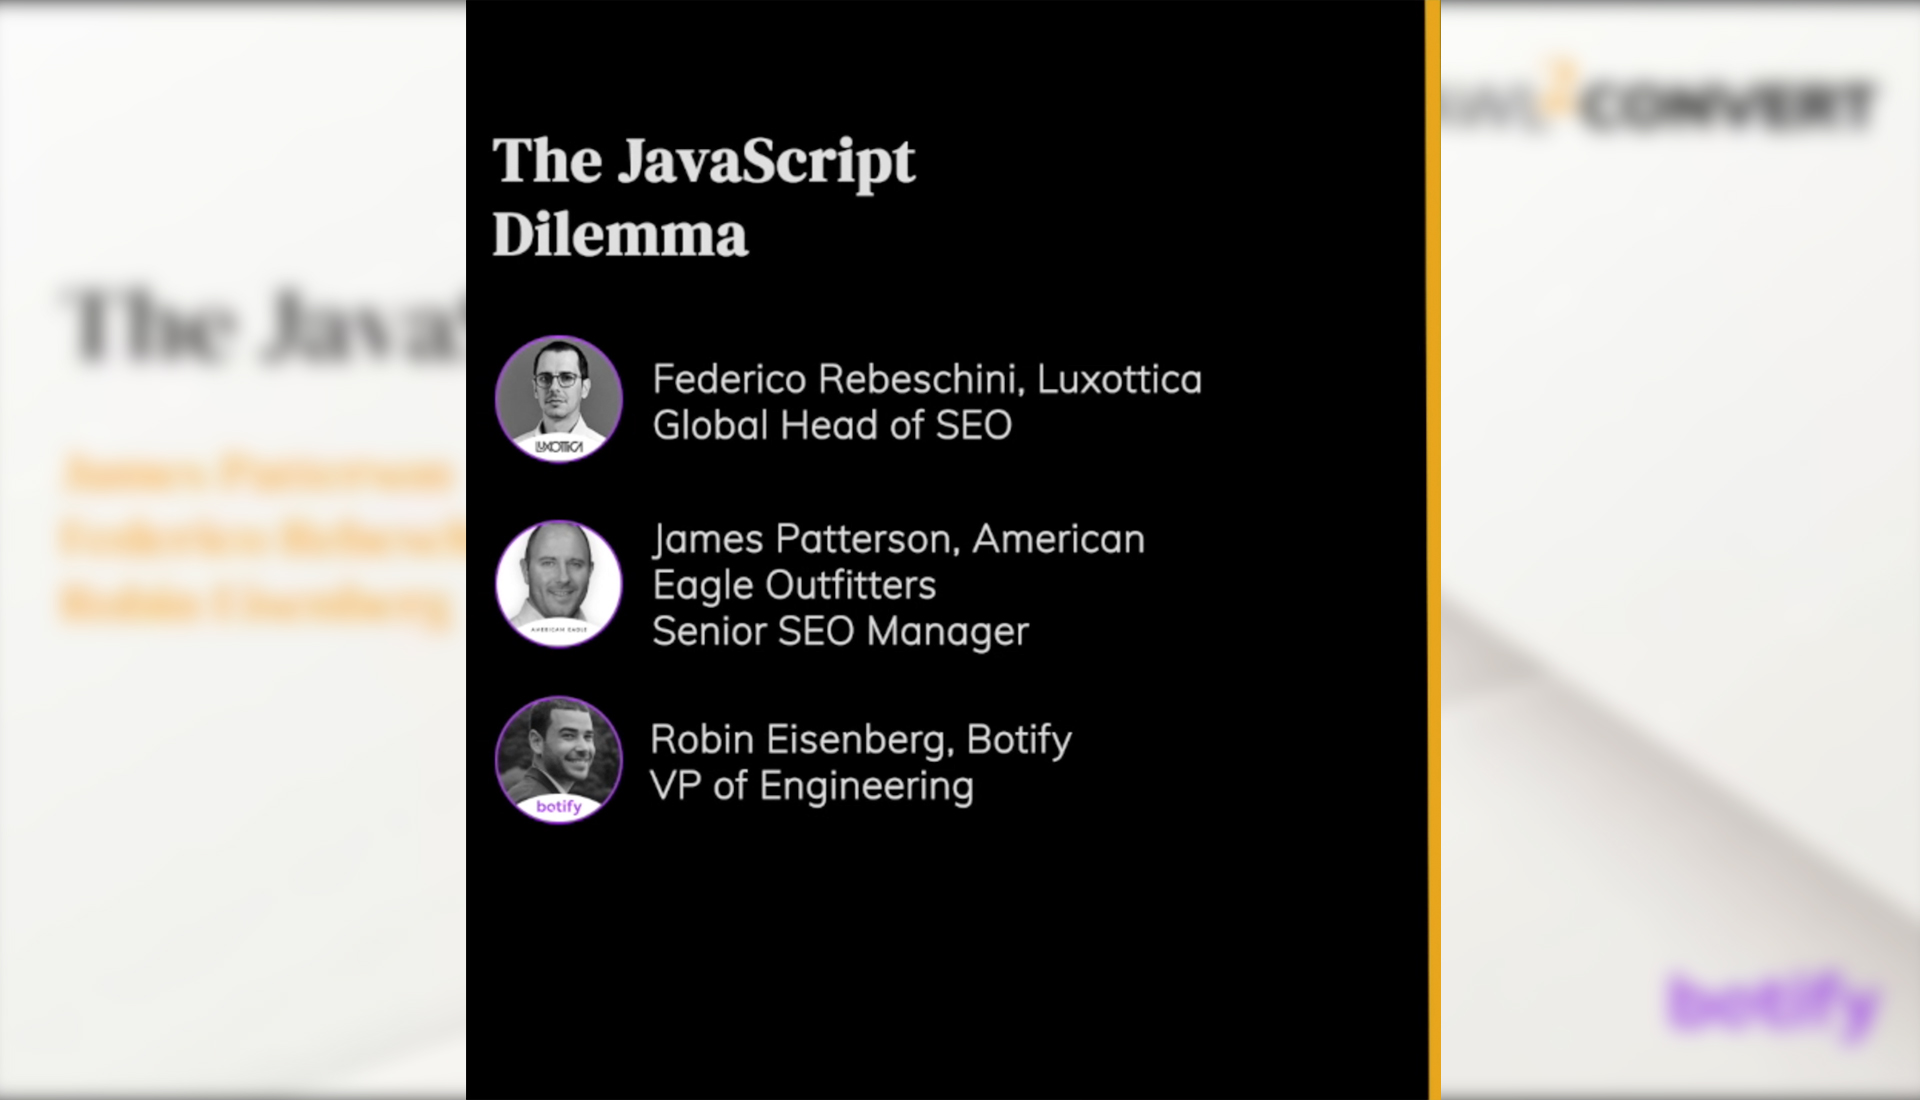 The JavaScript Dilemma